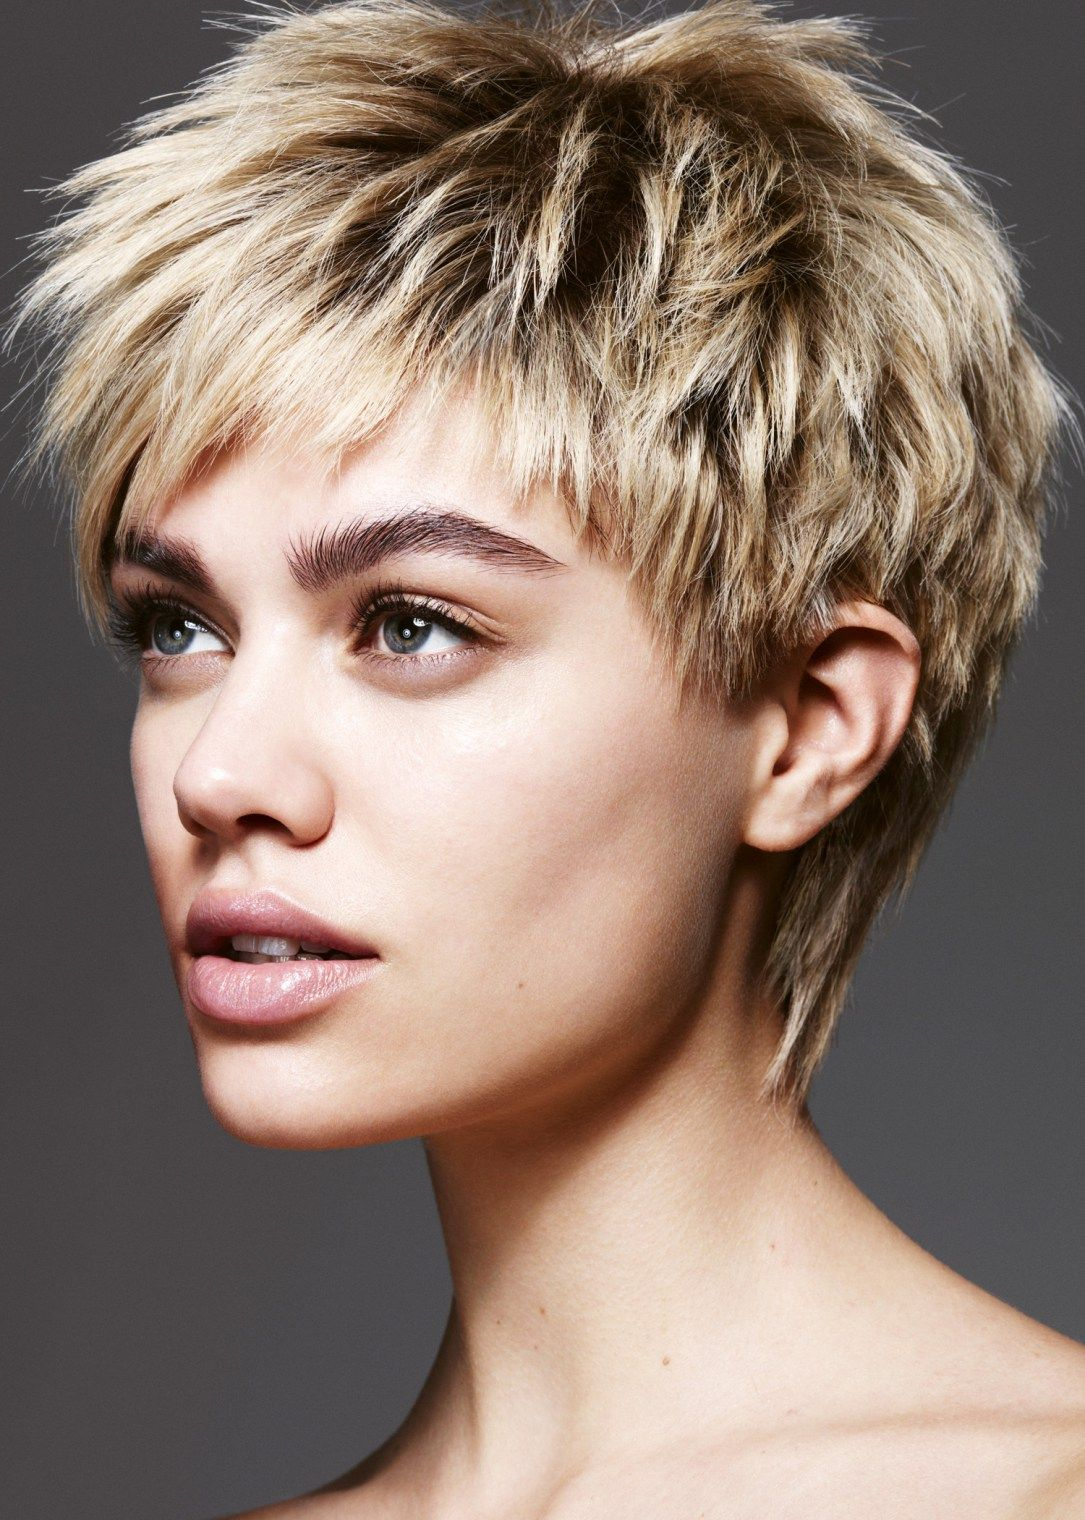 textured short hairstyles 7 | short arguably hair | short